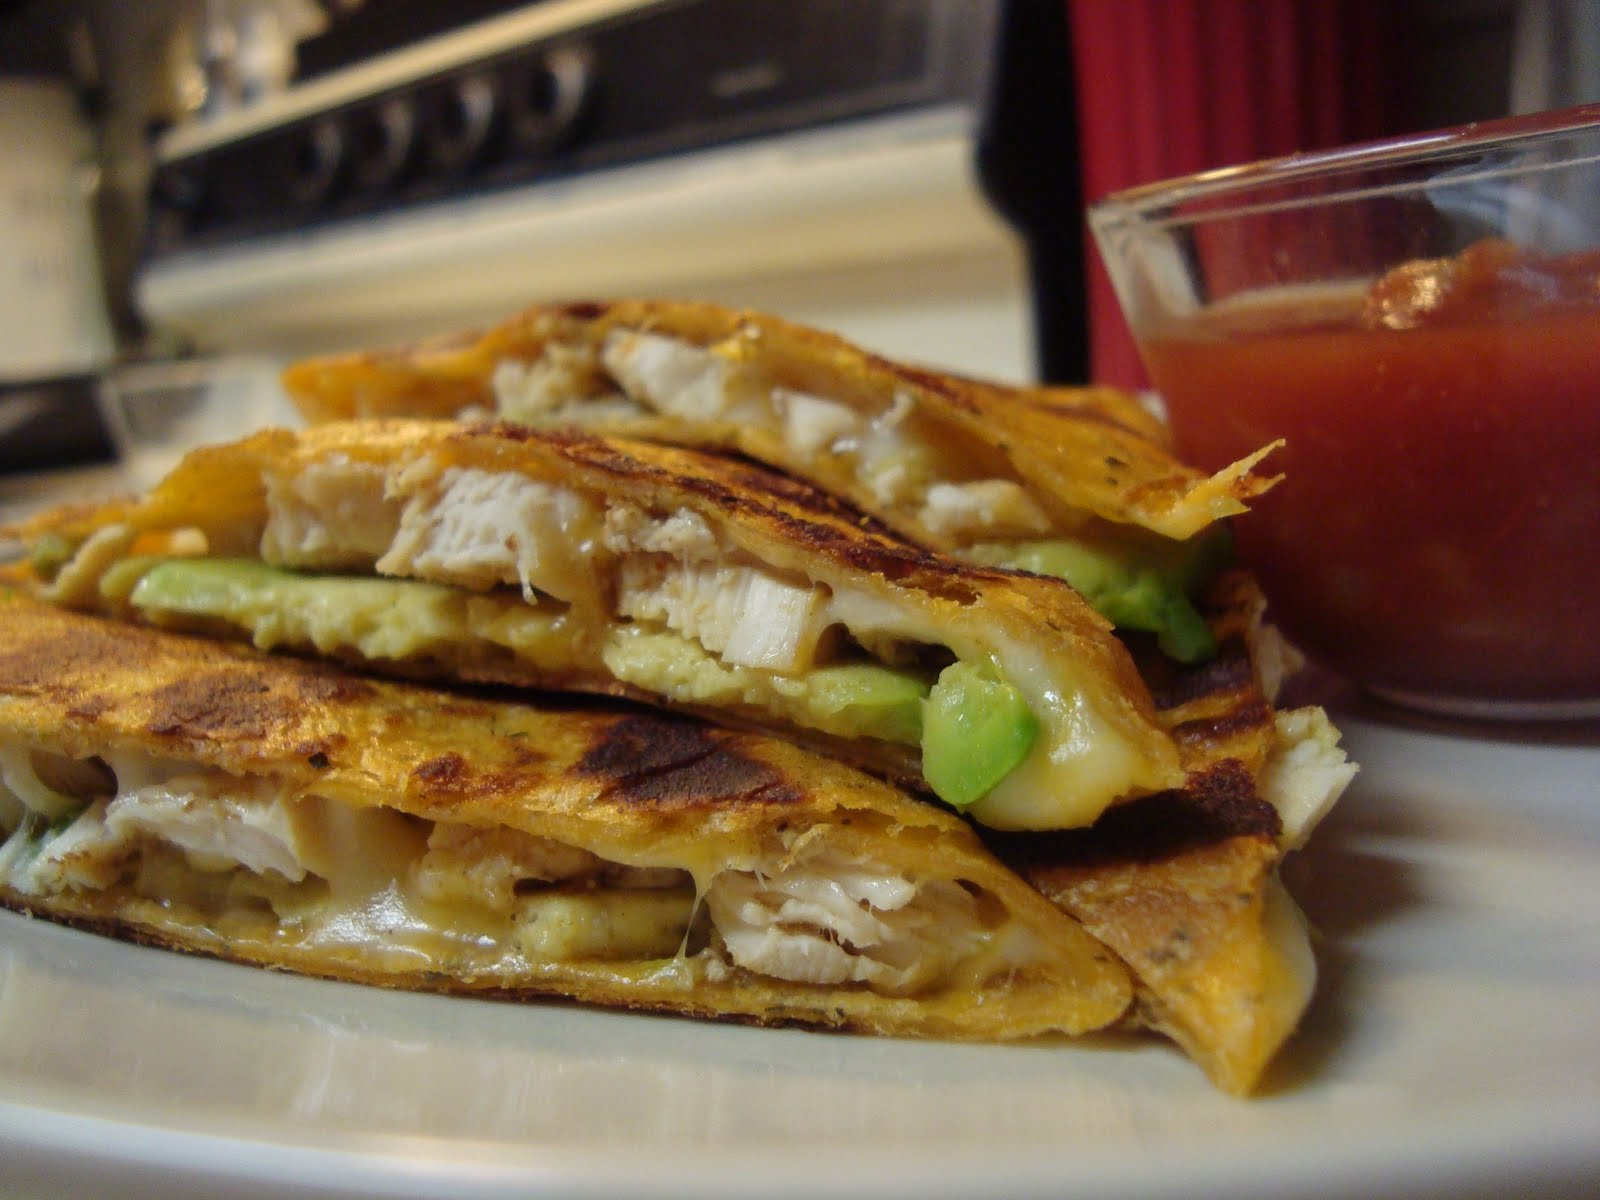 EAt iT uP: Chicken and Avocado Stuffed Quesadillas